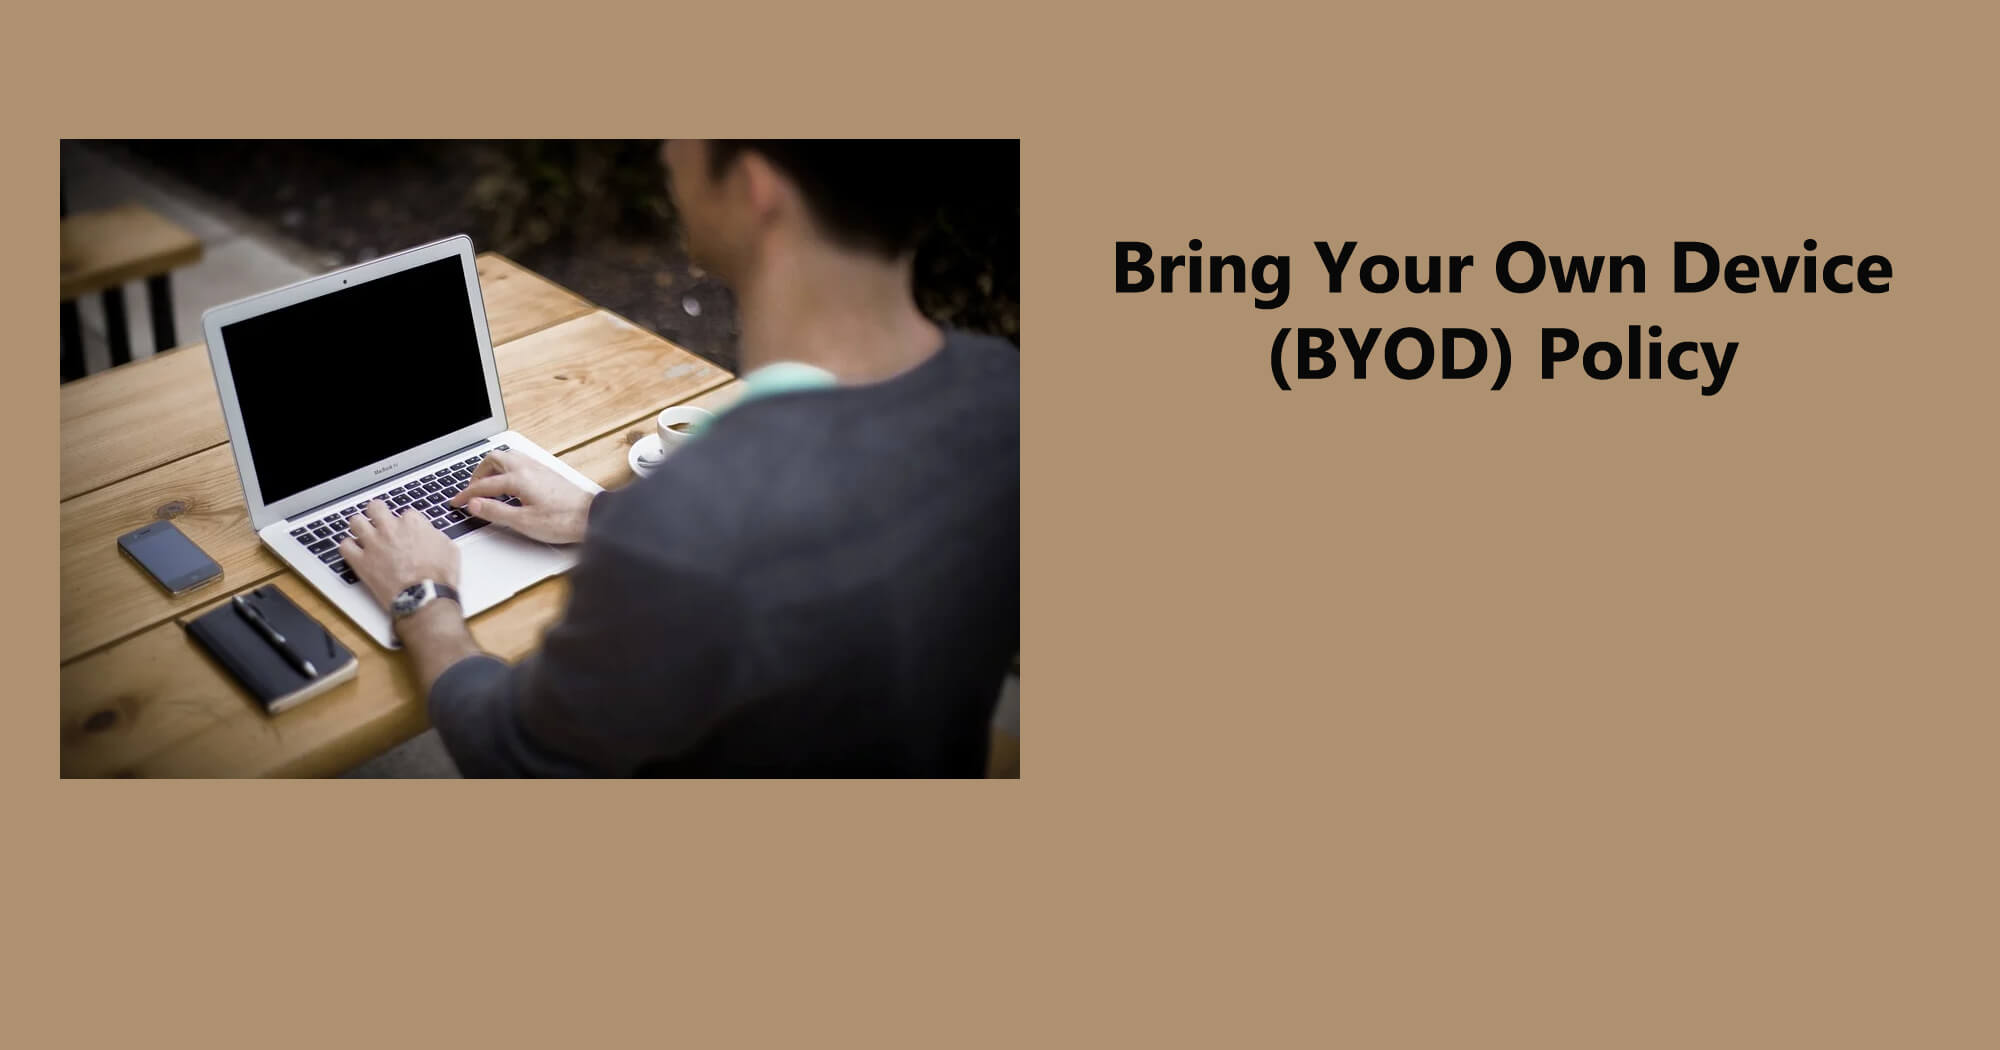 image for BYOD - Bring Your Own Device